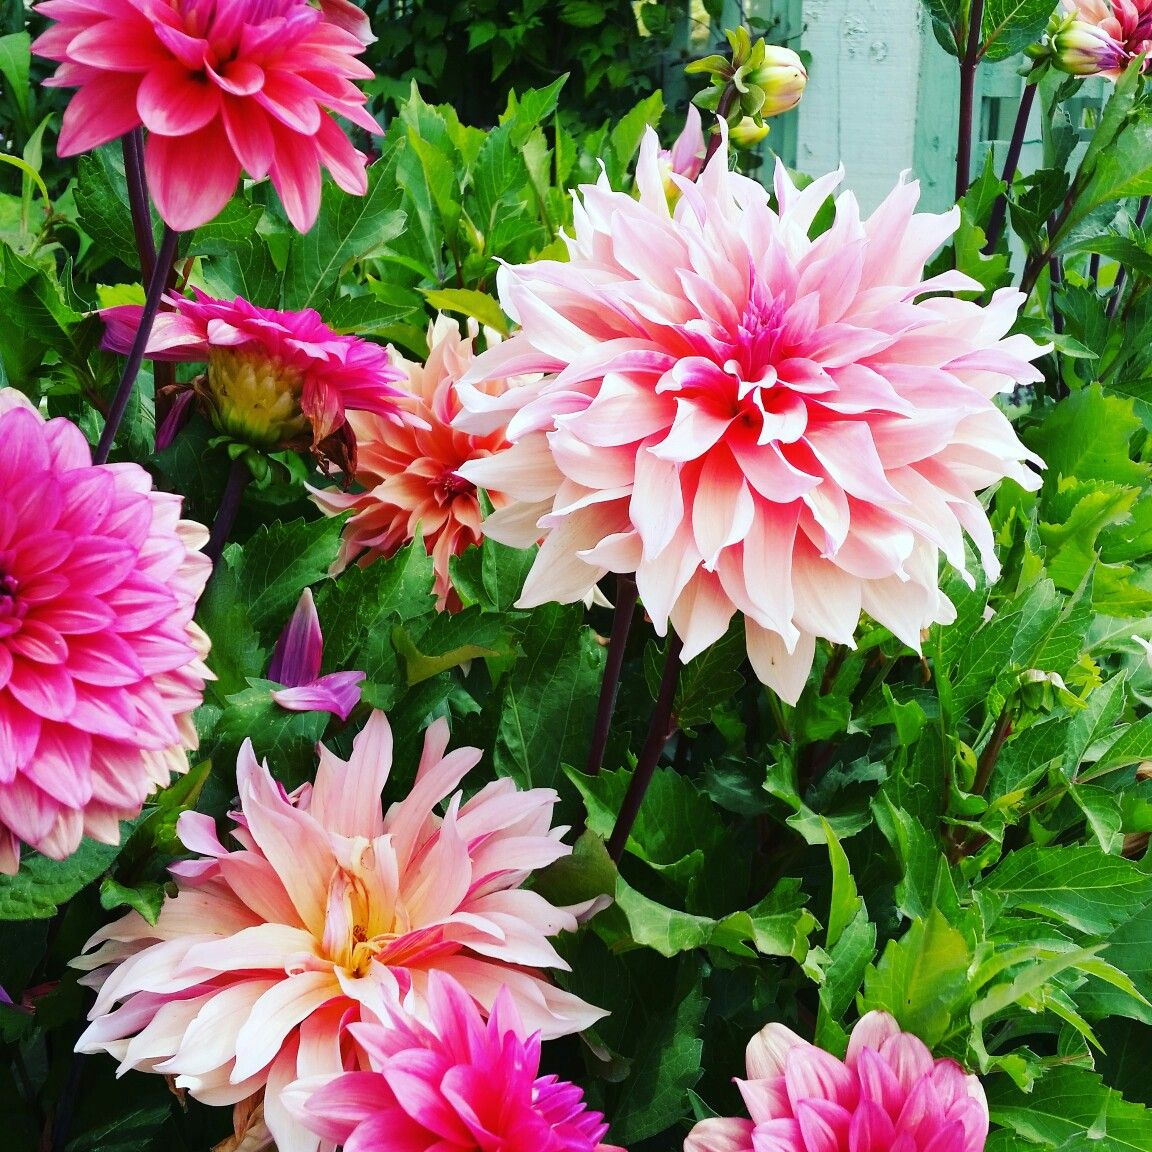 Pin By Stephanie Collins On Dahlias Delight In 2020 Plants Dahlia Garden